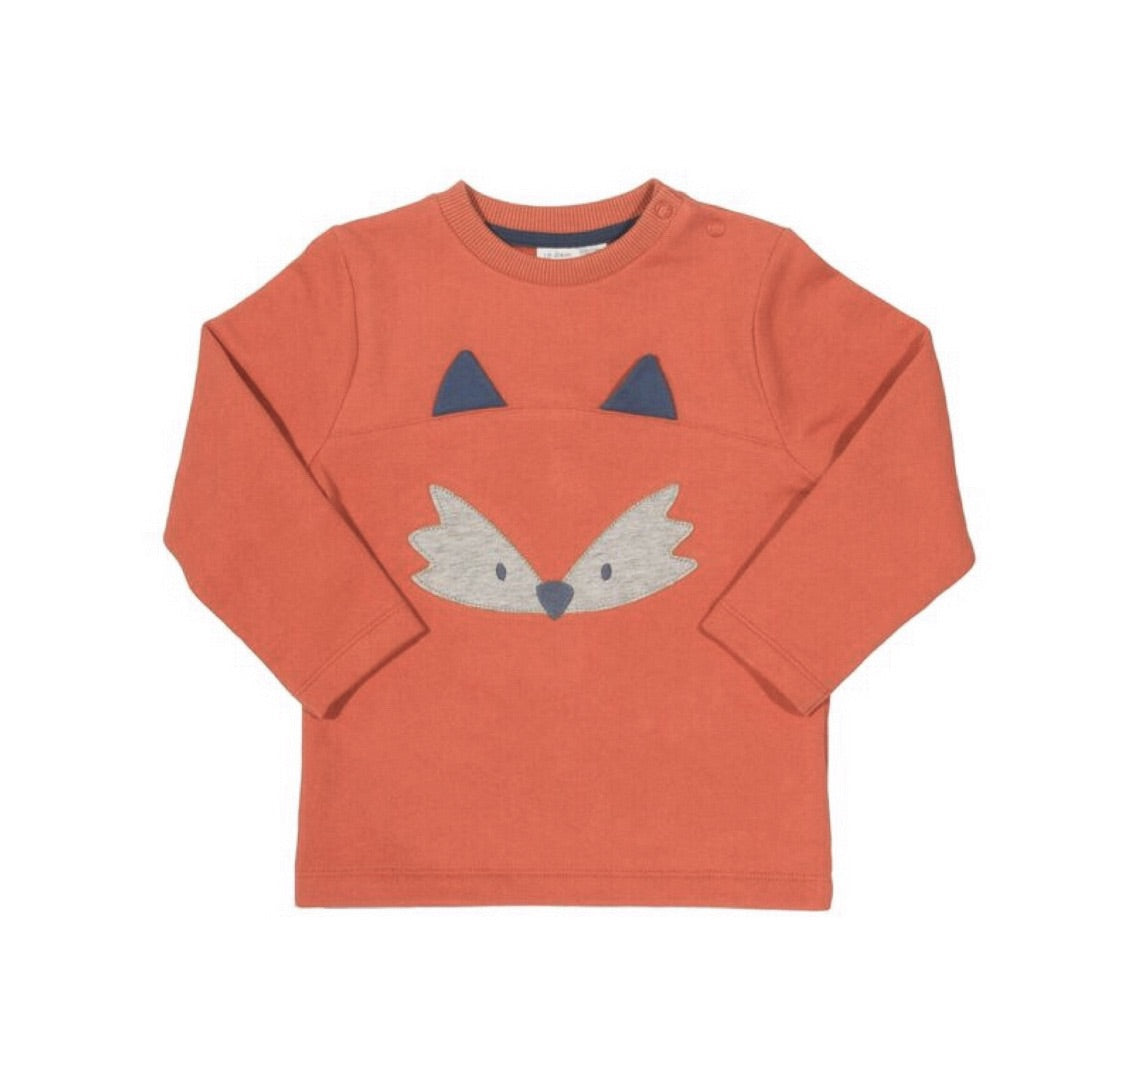 KITE organic cotton fox sweatshirt (0-24 months)